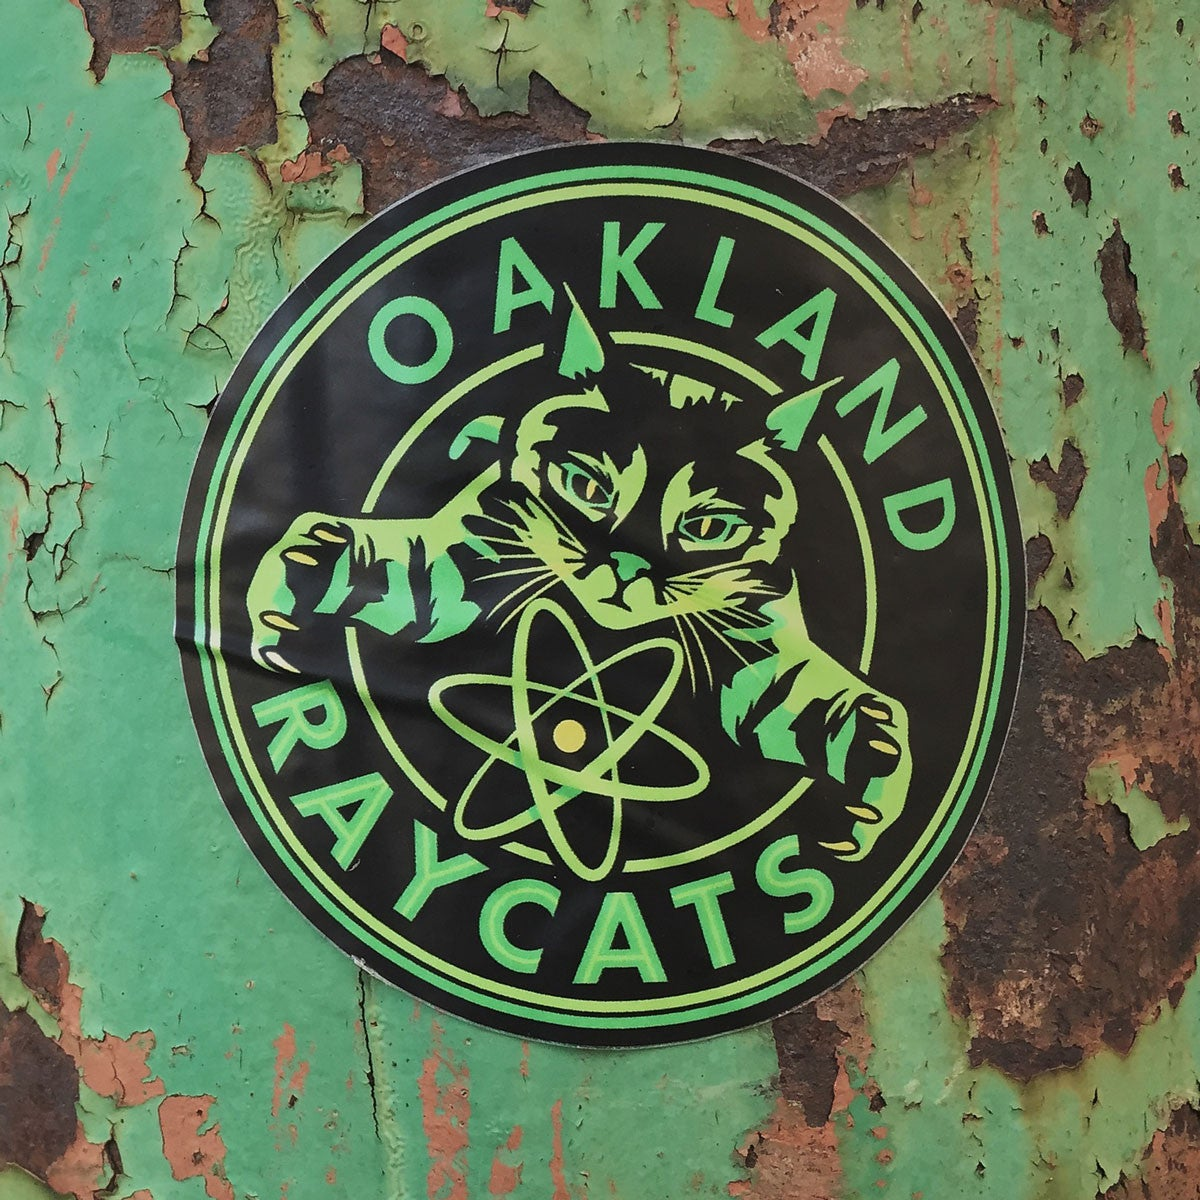 Raycats Sticker